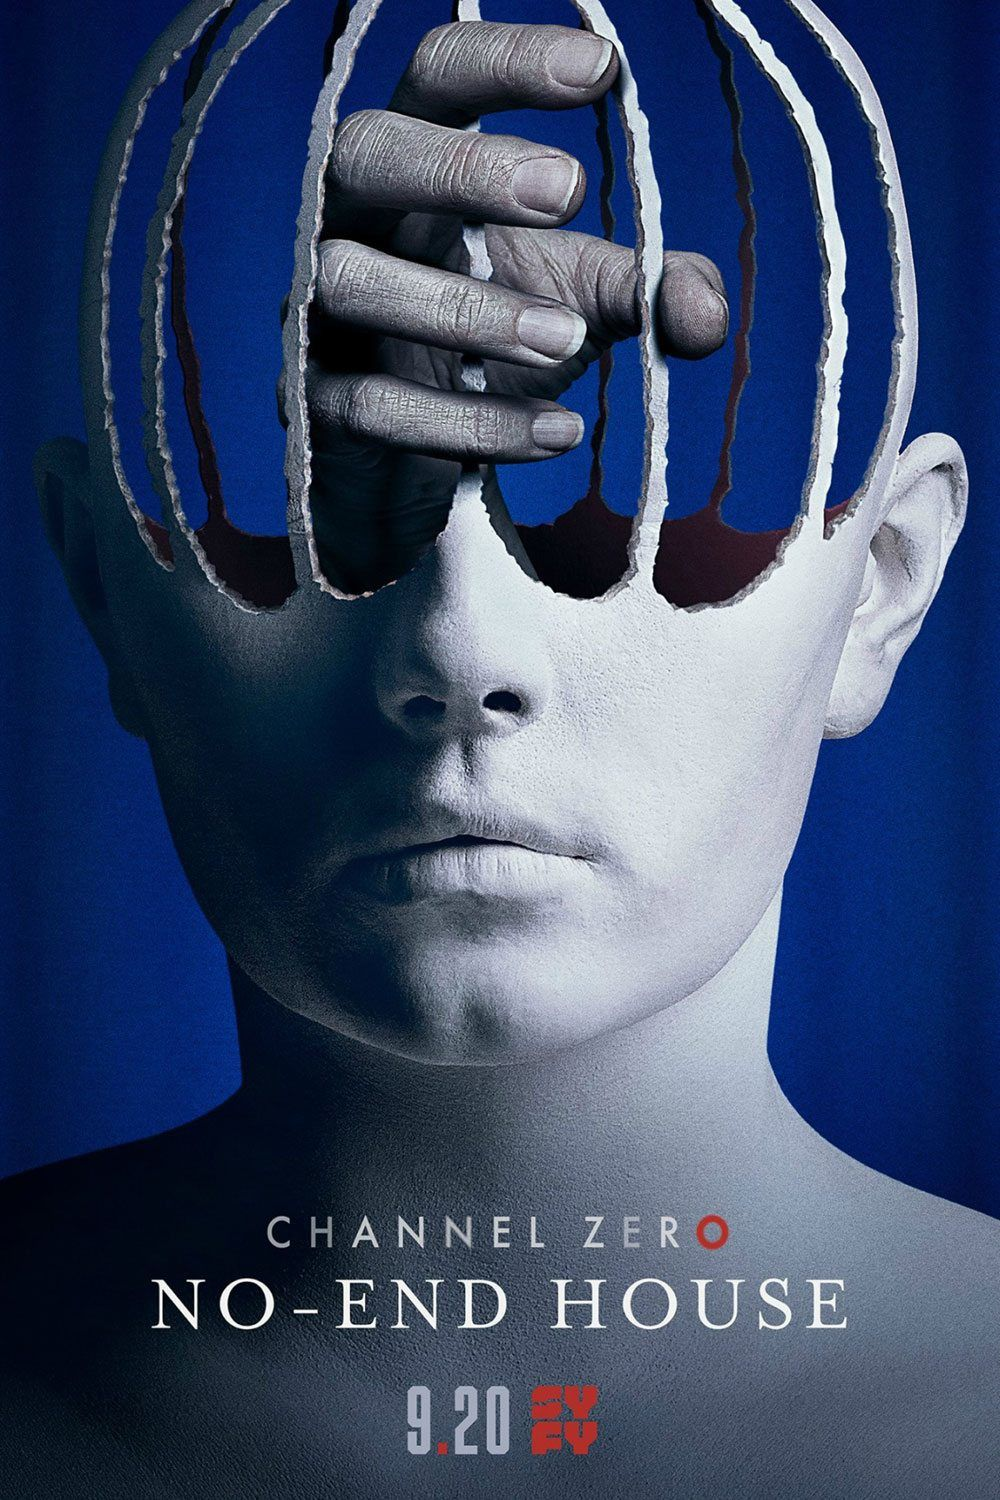 Channel Zero: No-End House dès le 21 novembre sur Syfy : 1 maison, 6 pièces, 0 issue...